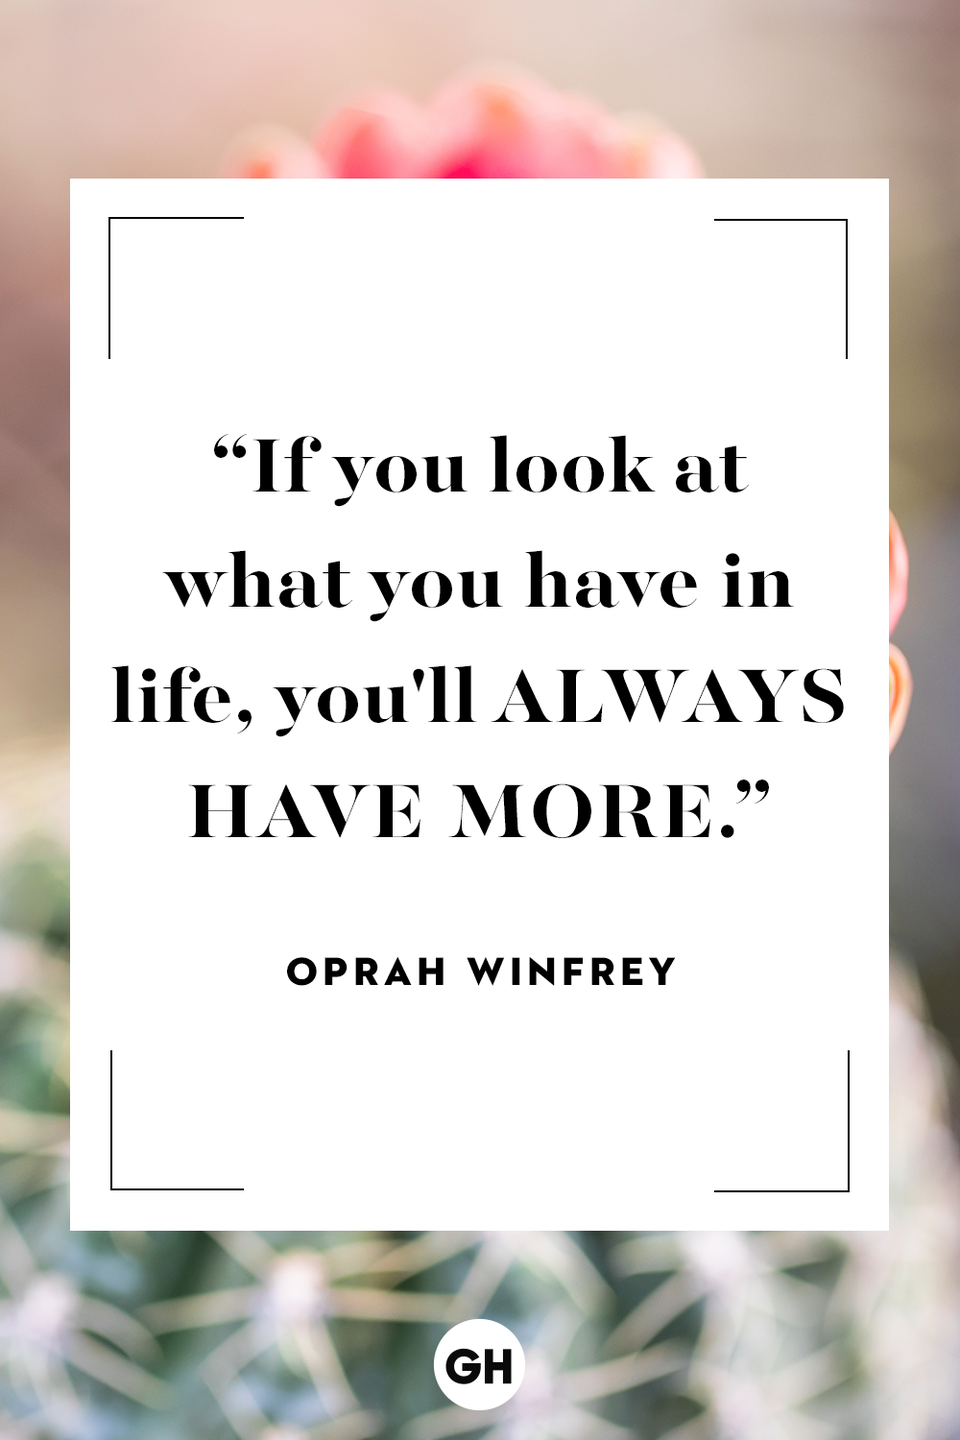 """<p>If you look at what you have in life, you'll always have more.</p><p><strong>RELATED: <a href=""""https://www.goodhousekeeping.com/life/g22737382/optimistic-quotes/"""" rel=""""nofollow noopener"""" target=""""_blank"""" data-ylk=""""slk:Optimistic Quotes That Will Help You See the Bright Side of Life"""" class=""""link rapid-noclick-resp"""">Optimistic Quotes That Will Help You See the Bright Side of Life</a></strong></p>"""